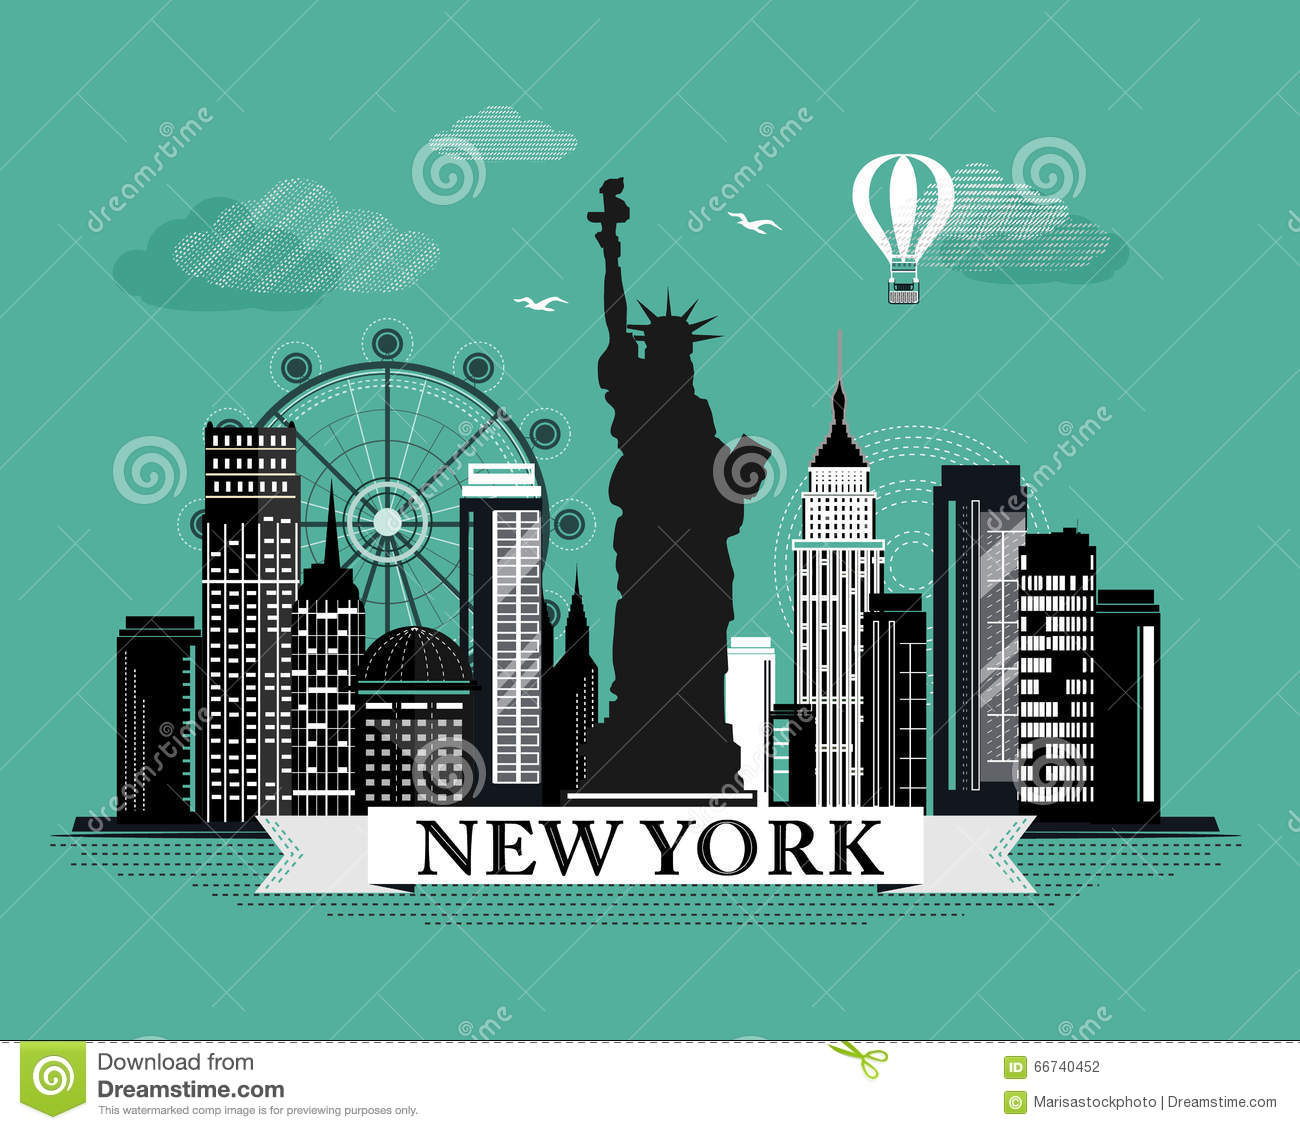 Poster design new york - City Cool Design Detailed Elements Graphic Landmarks Landscape Looking New Poster Retro Skyline York